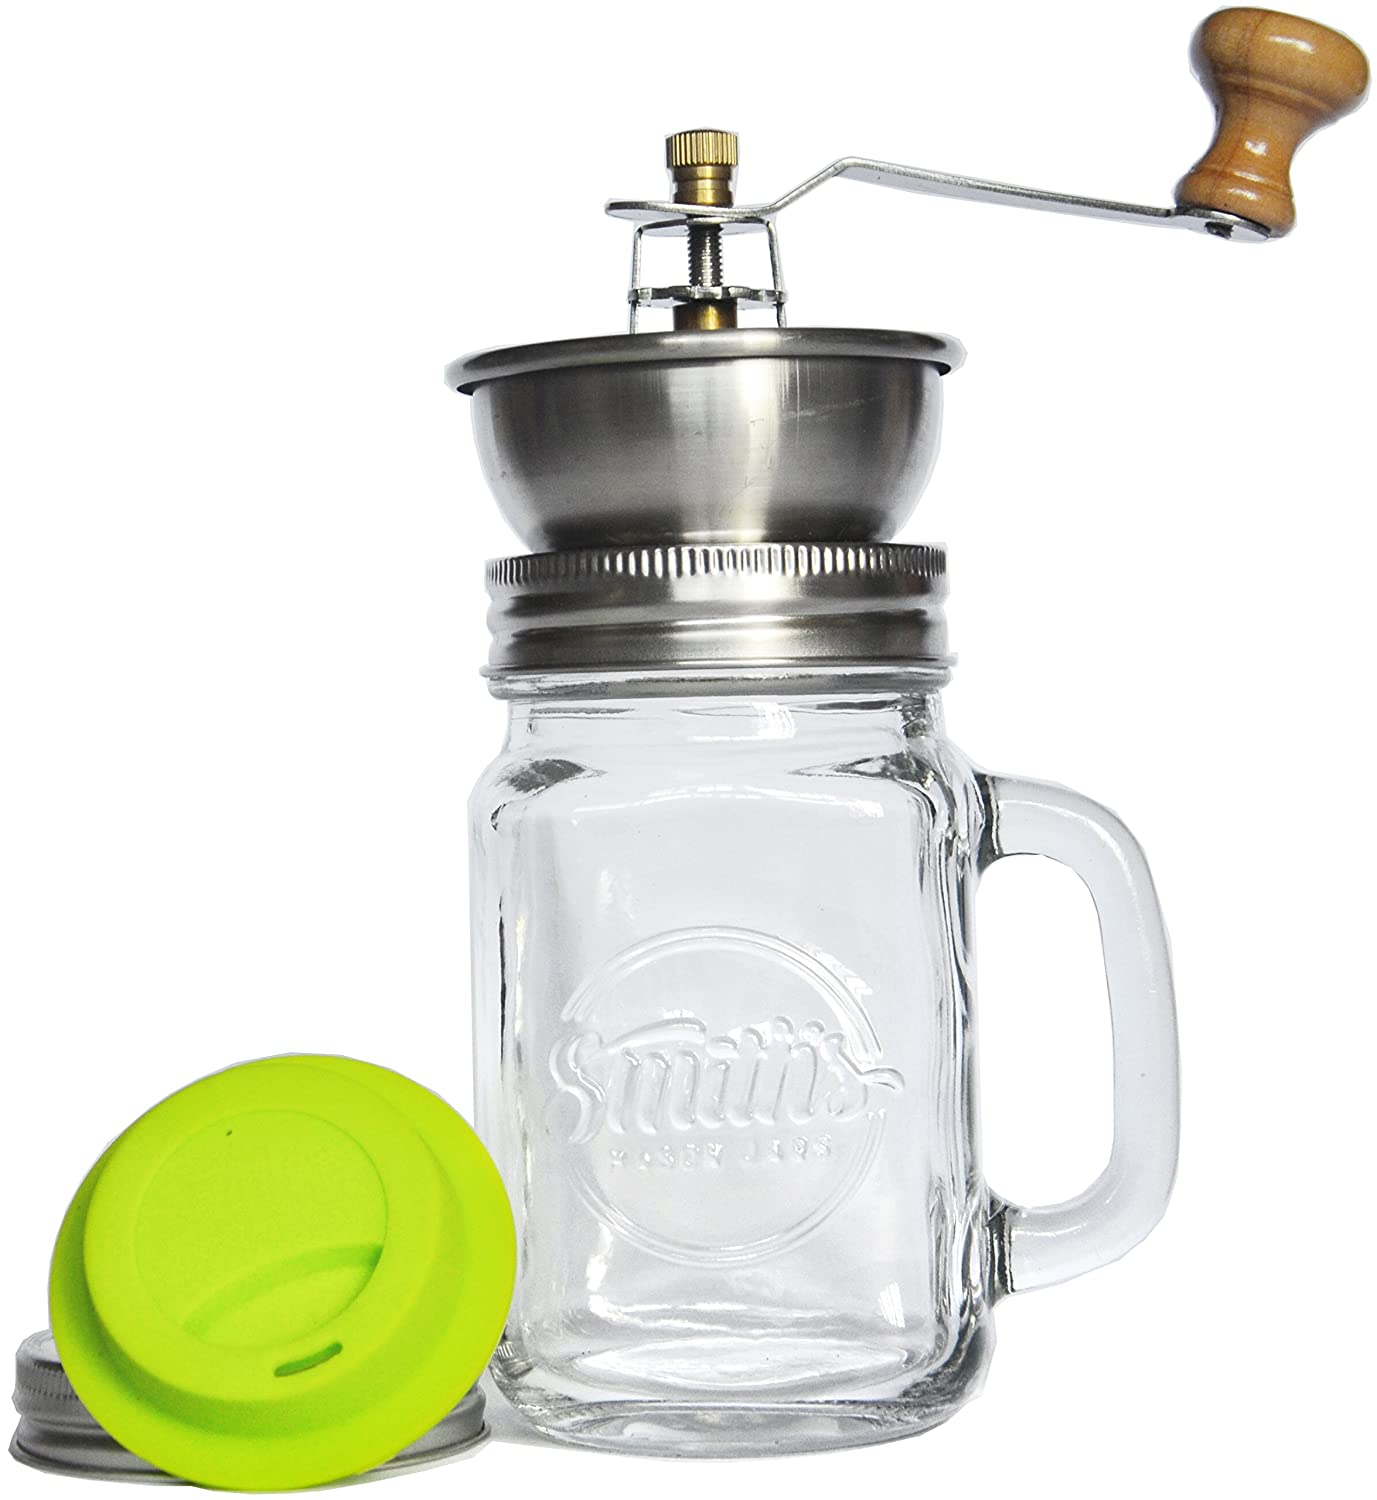 Smith's Mason Jar Coffee Mug with Ceramic Grinder with Silicone Drinking Lid - Amazing Manual Adjustable Coffee Grinder Smith's Mason Jars 4335457089